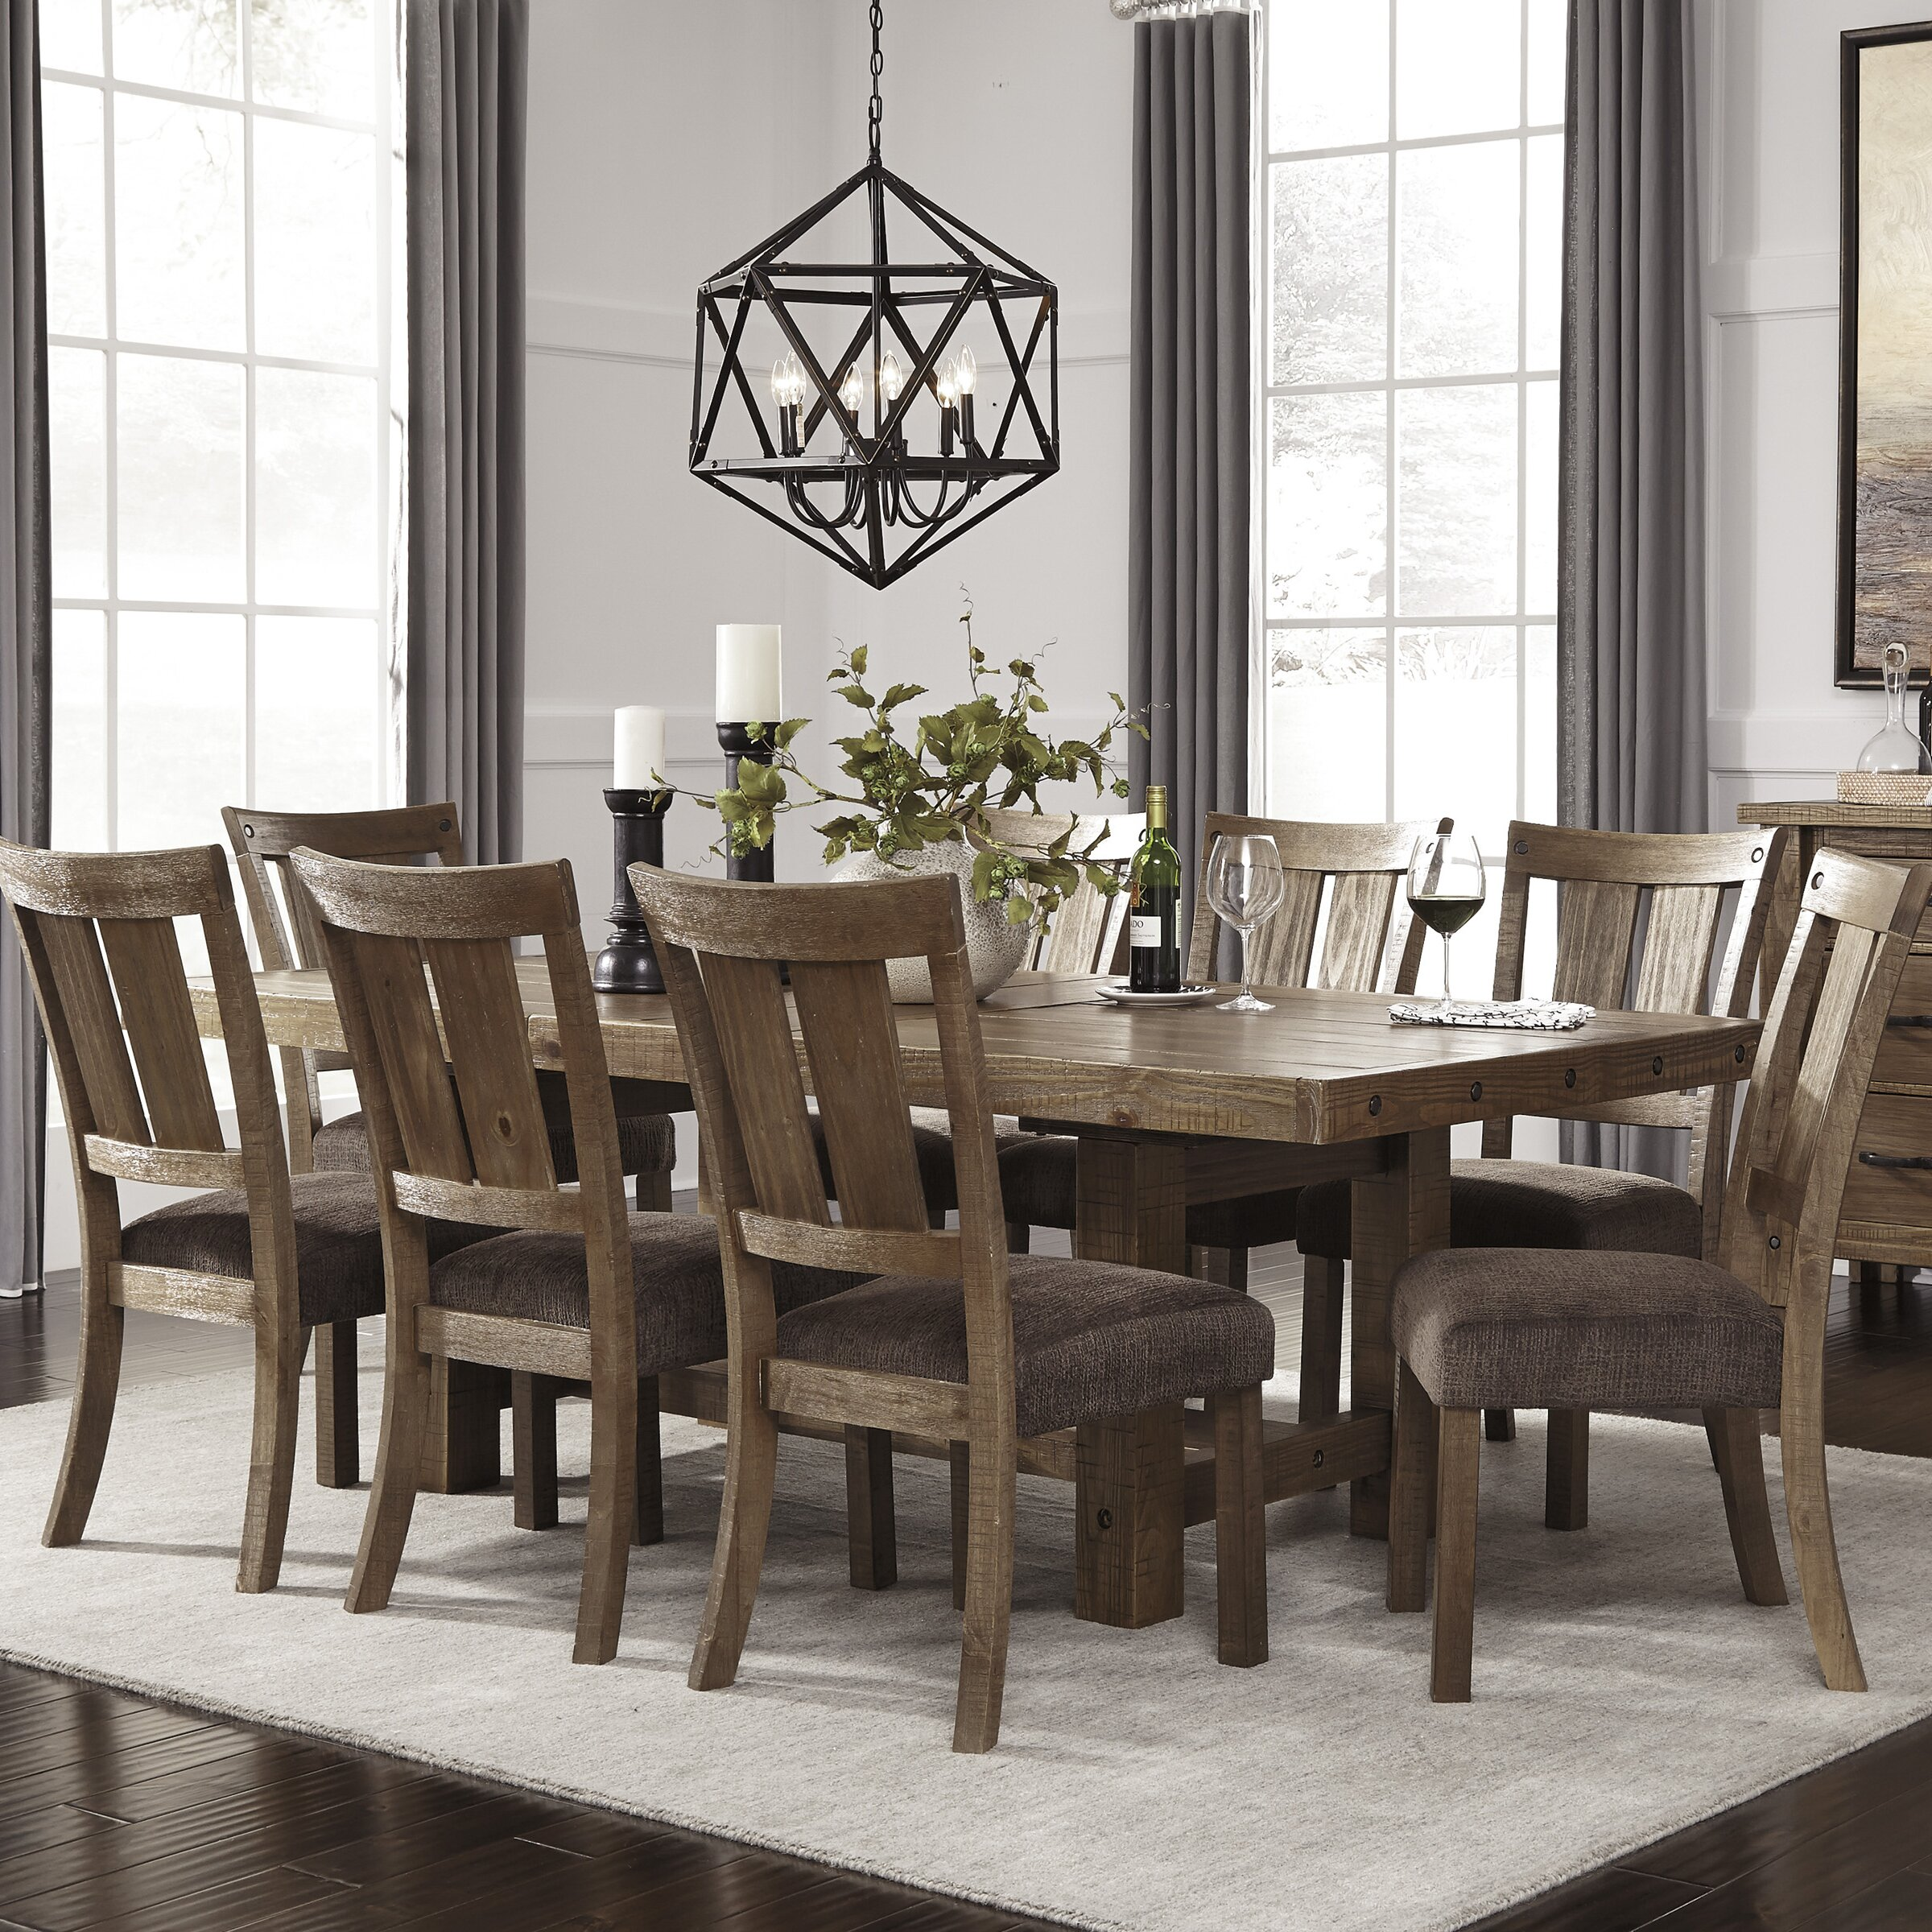 Dining Room Sets: Signature Design By Ashley 9 Piece Dining Set & Reviews